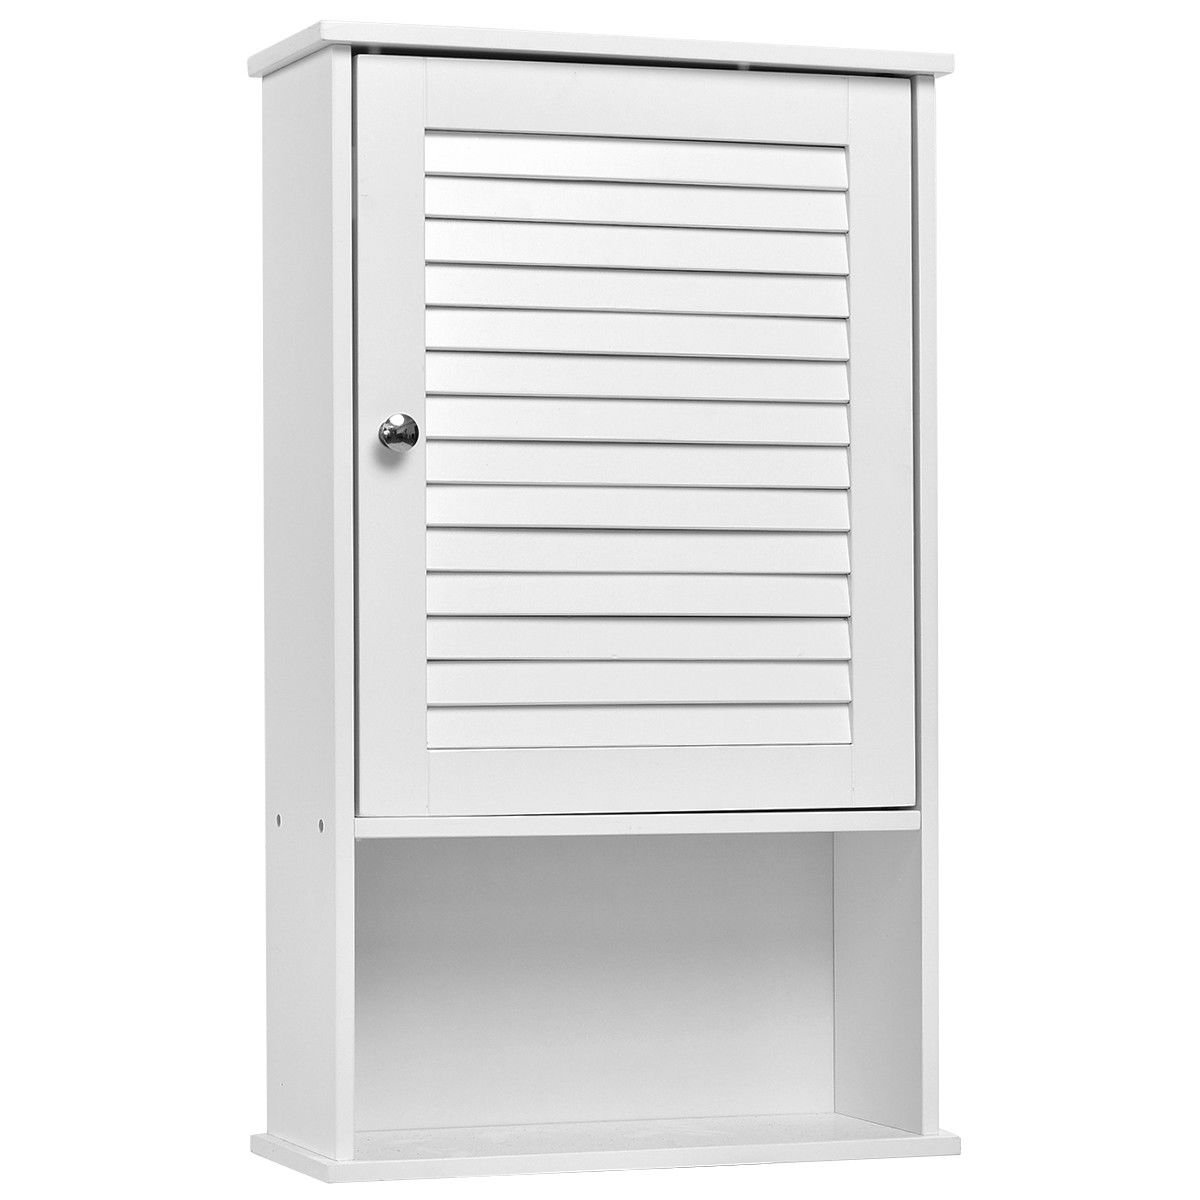 GHP Home White 17'' Lx7 Wx28 H Durable Door Hanging Wall Mounted Bathroom Cabinet